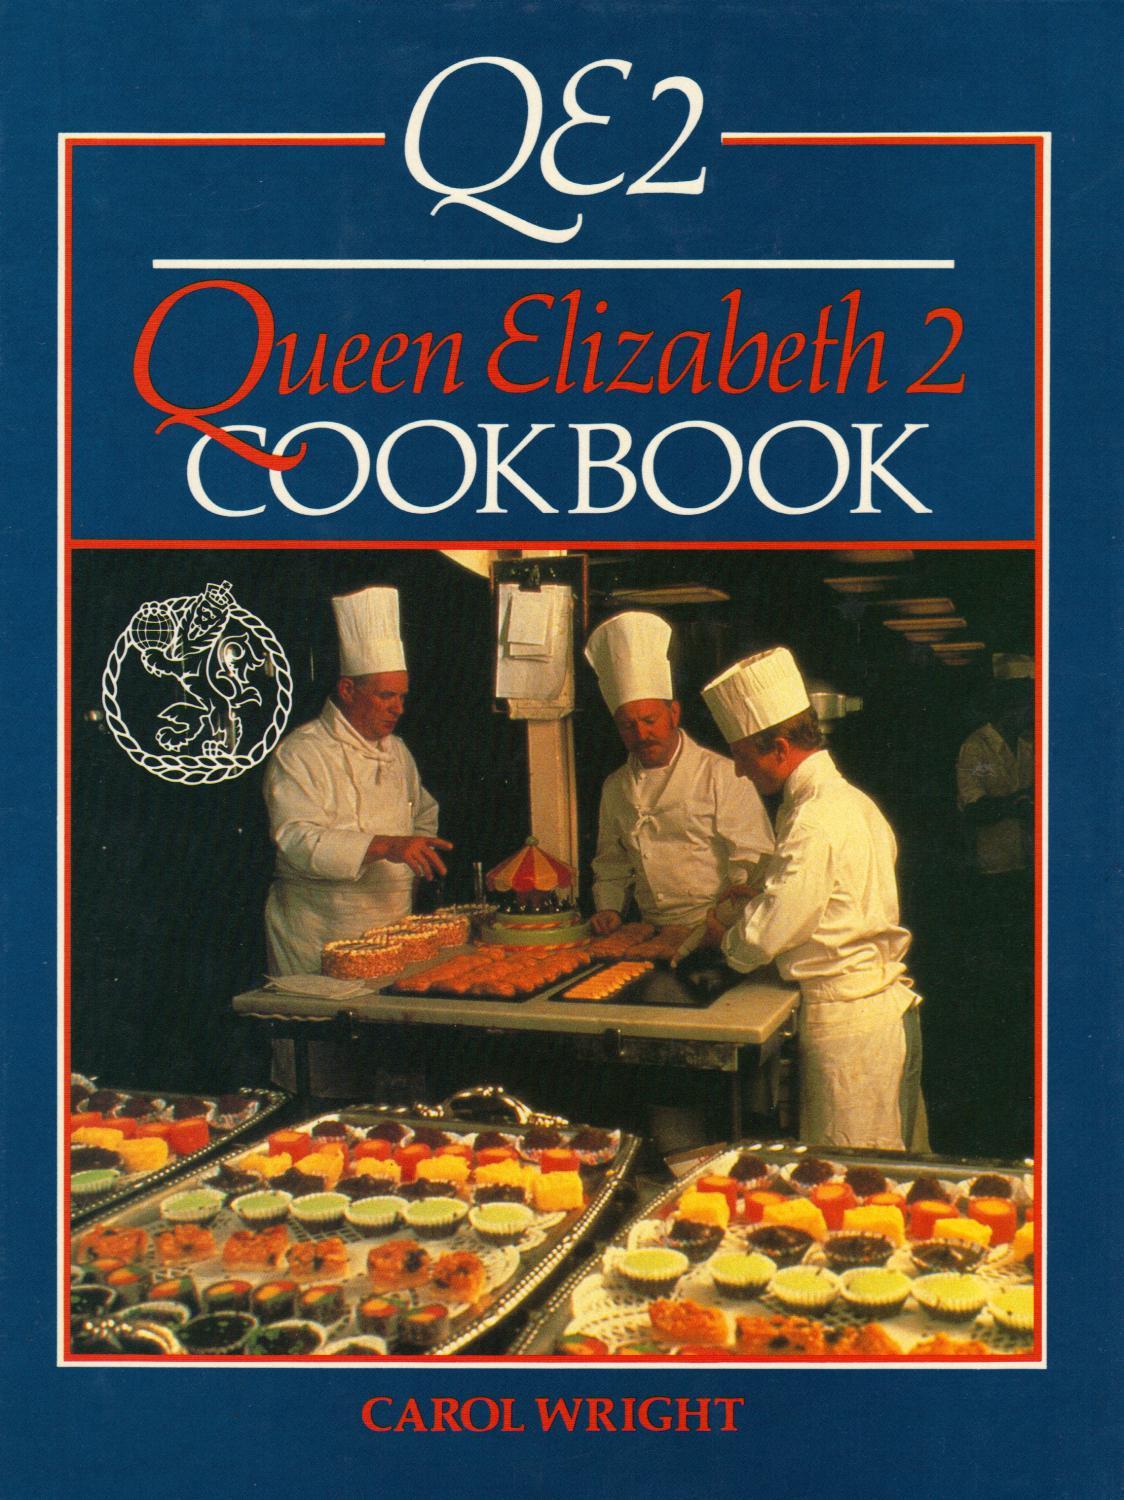 Queen Elizabeth 2 Cookbook - Carol Wright